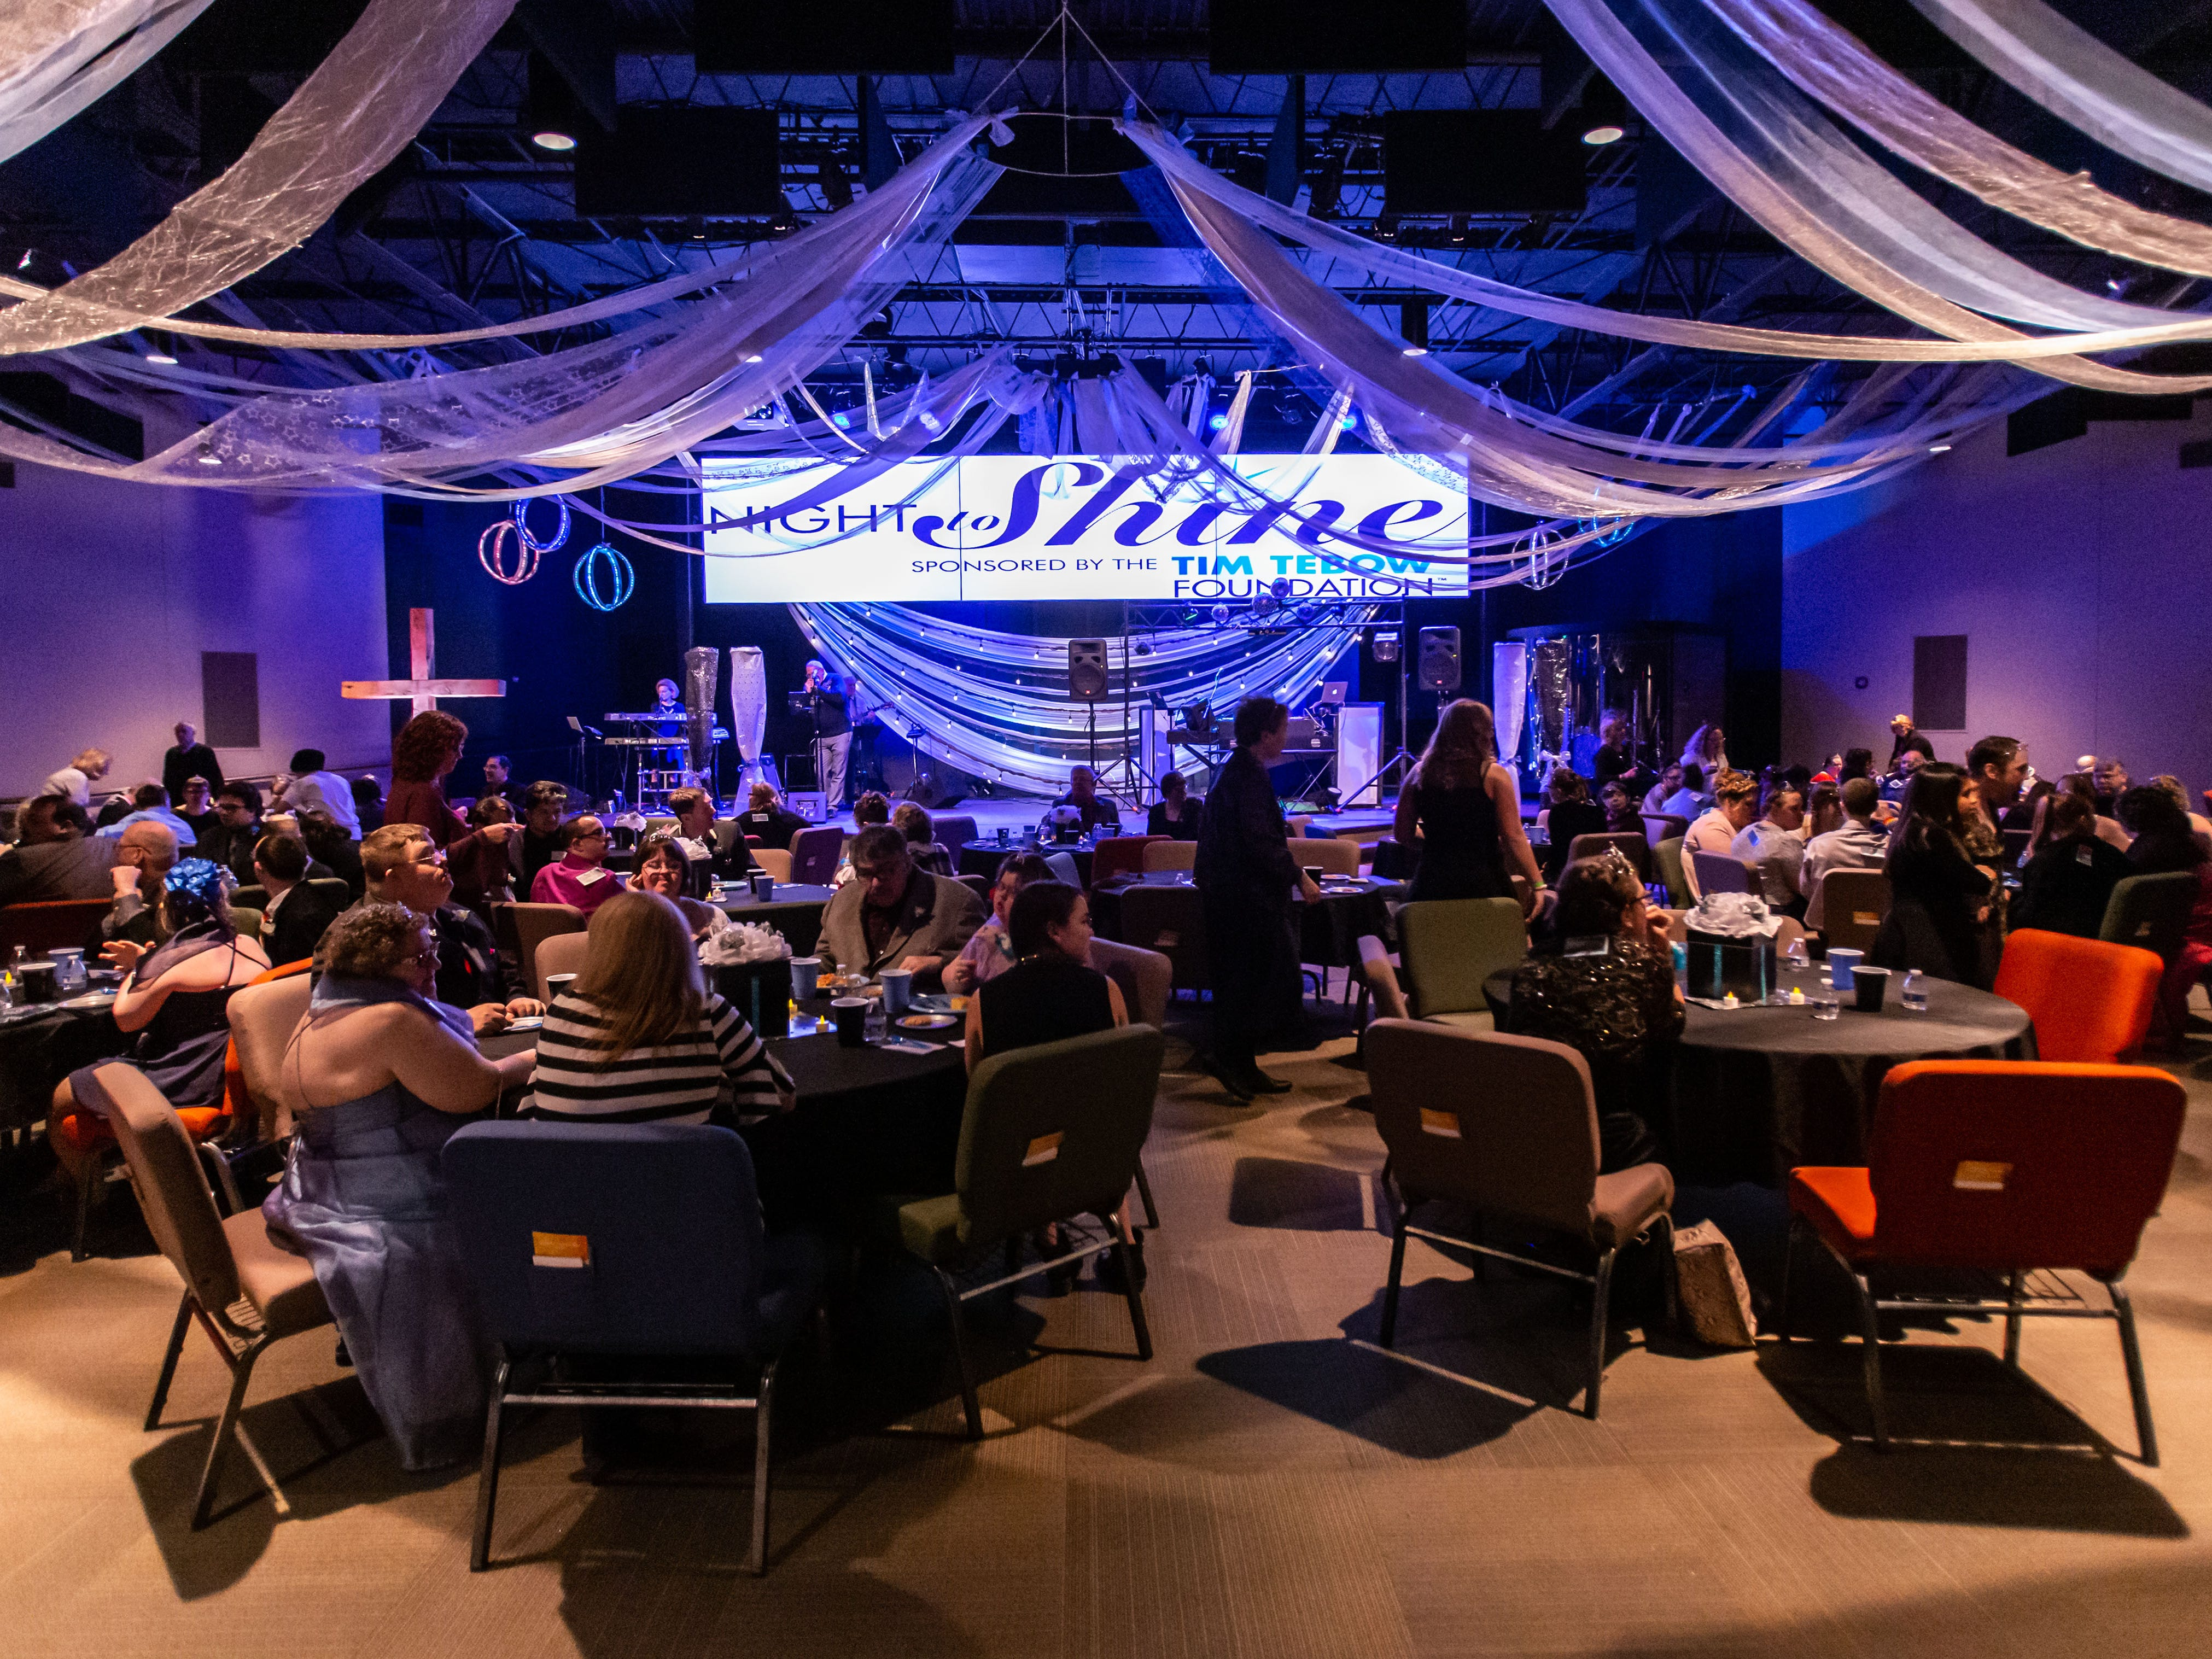 Guests enjoy a catered dinner and live music during the Night to Shine Prom hosted by Brooklife Church in Mukwonago on Friday, Feb. 8, 2019. Night to Shine is a unforgettable prom night experience for people with special needs sponsored by the Tim Tebow Foundation. The event is hosted by local churches in all 50 states across the globe all on one night.